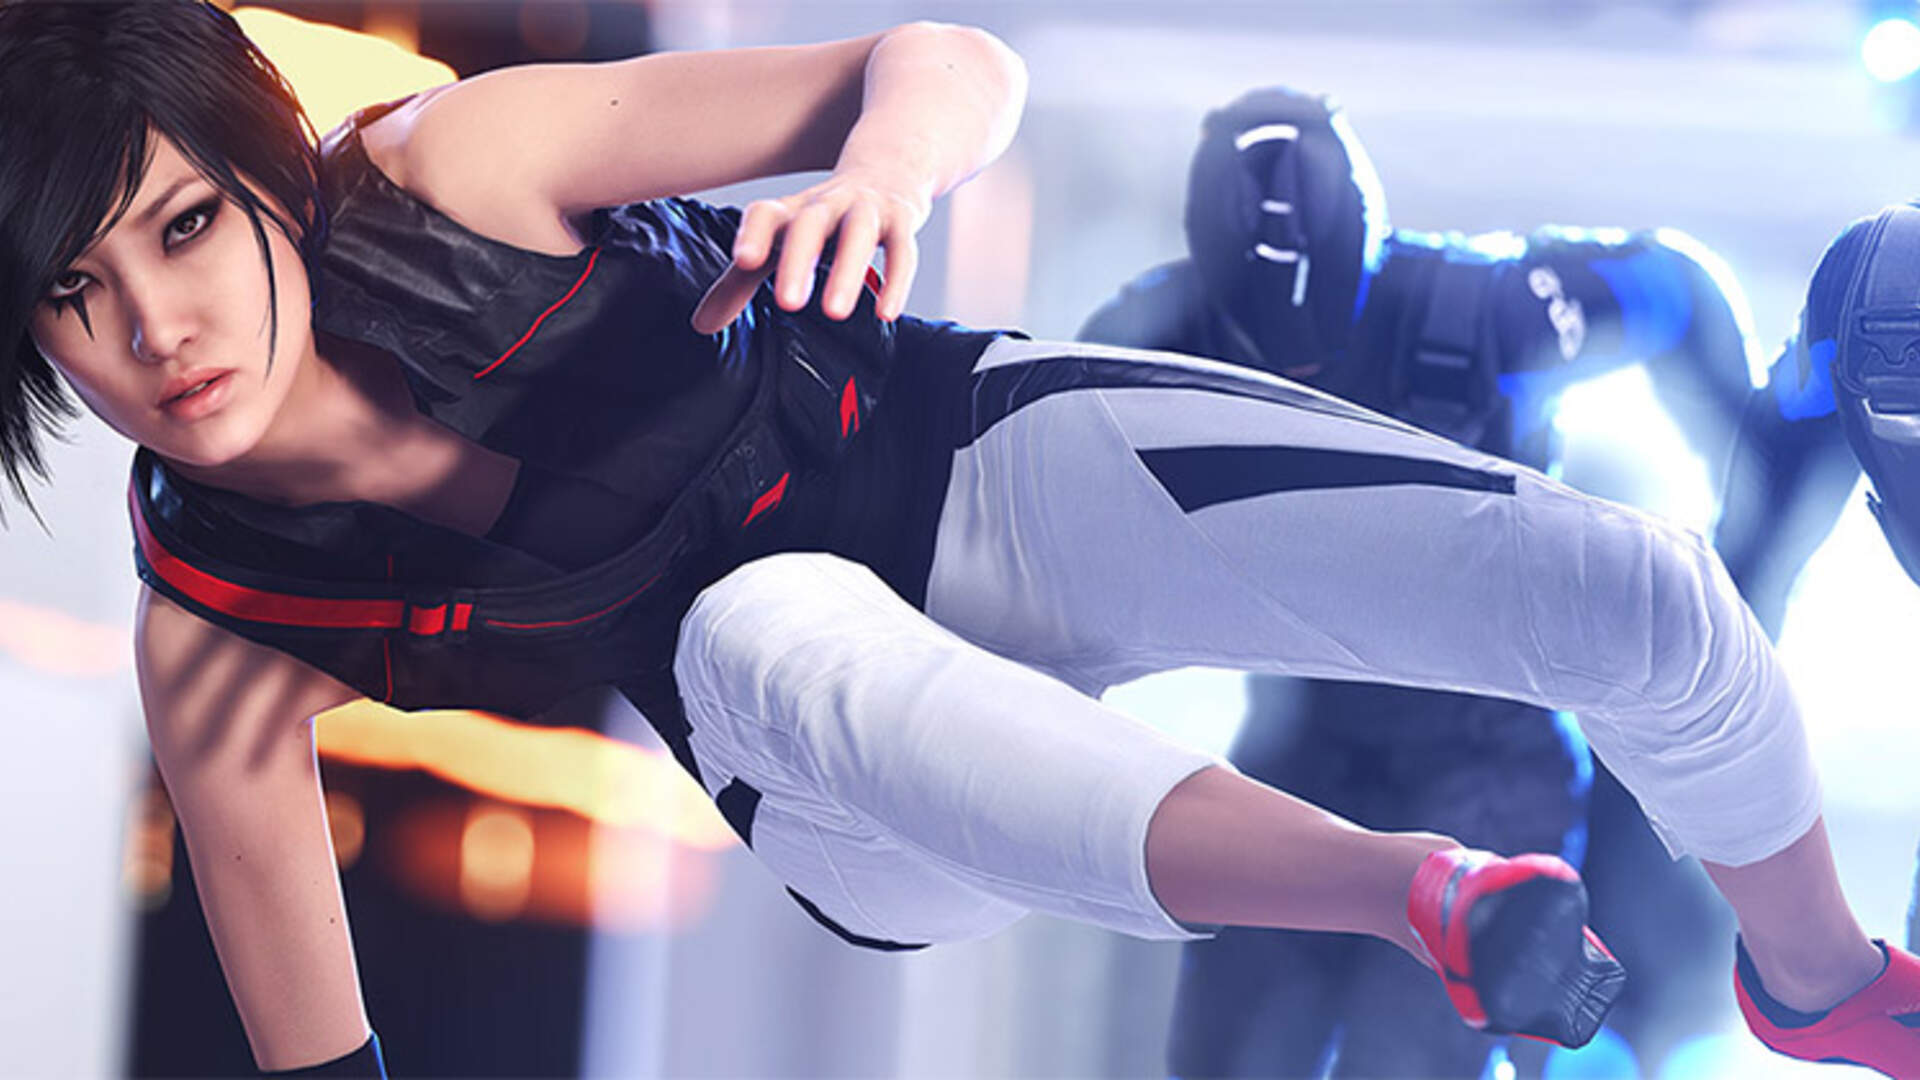 Mirror's Edge Catalyst Xbox One Review: Runner's Highs and Lows [Updated with Final Thoughts and Score!]